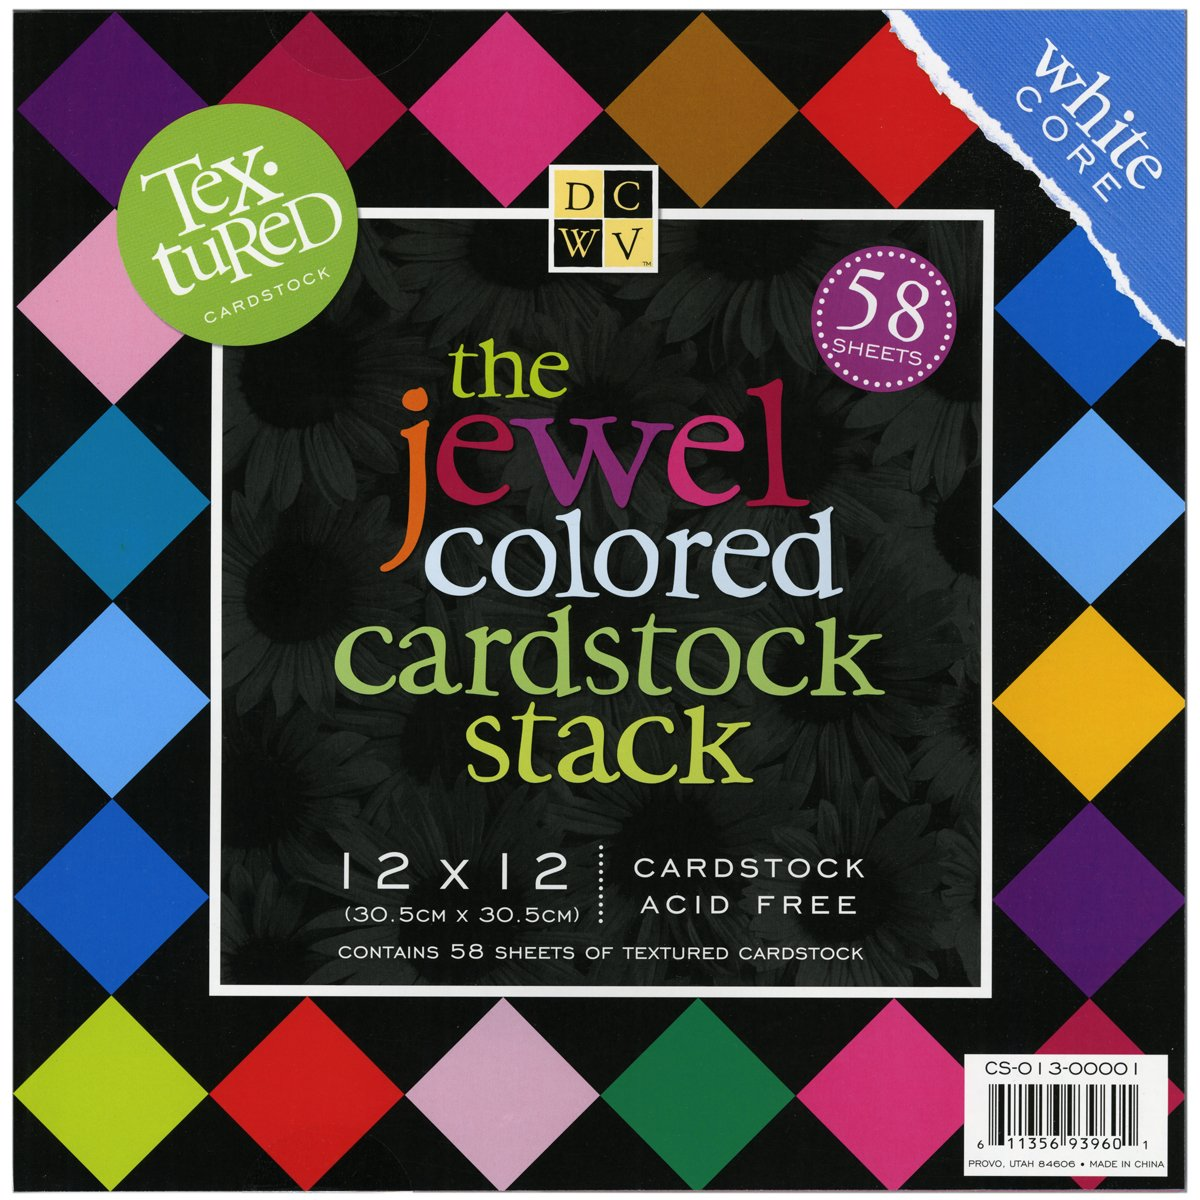 DCWV Cardstock Stack, Textured Jewel Colored, 58 Sheets, 12 x 12 inches DIECUTS WITH A VIEW CS013001